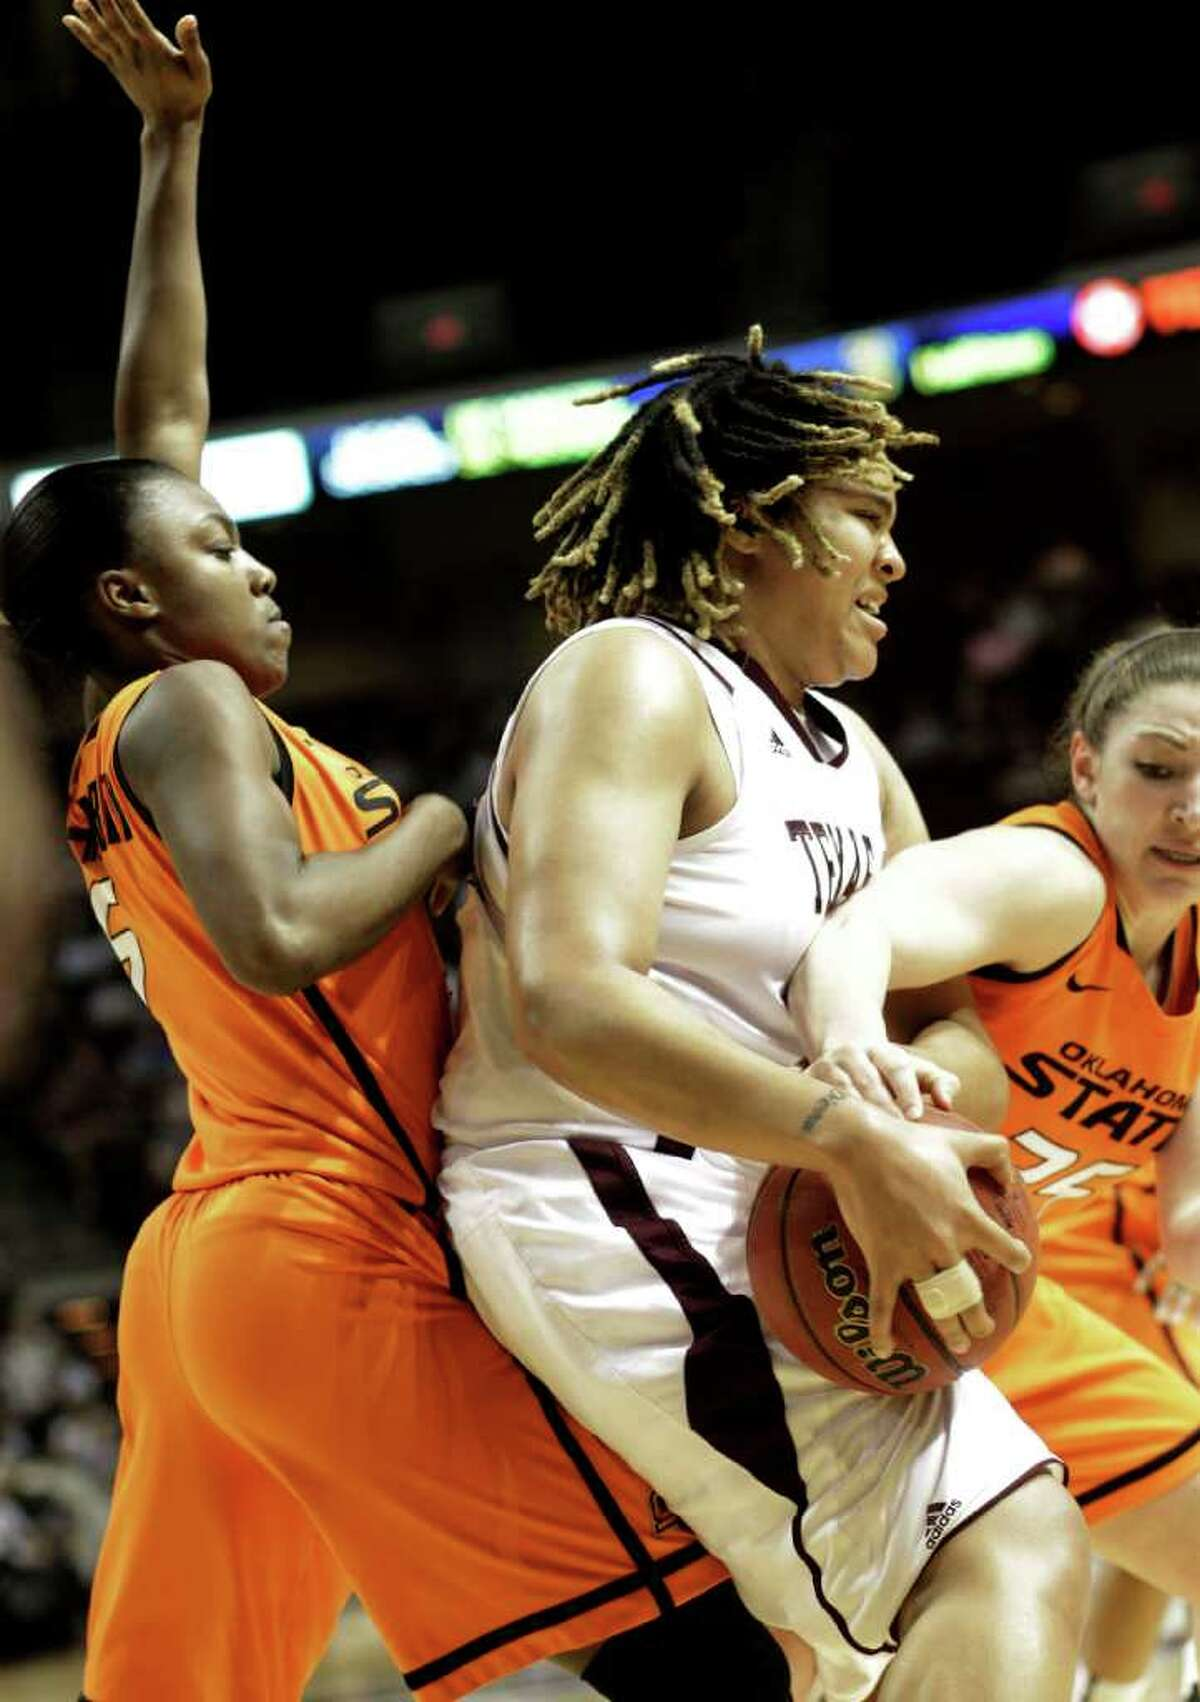 Texas A&M's Danielle Adams is sandwiched between Oklahoma State defenders Caroly Blair-Mobley (5) and Lindsey Keller (25) during the first half on Saturday, Feb. 19, 2011, in College Station.